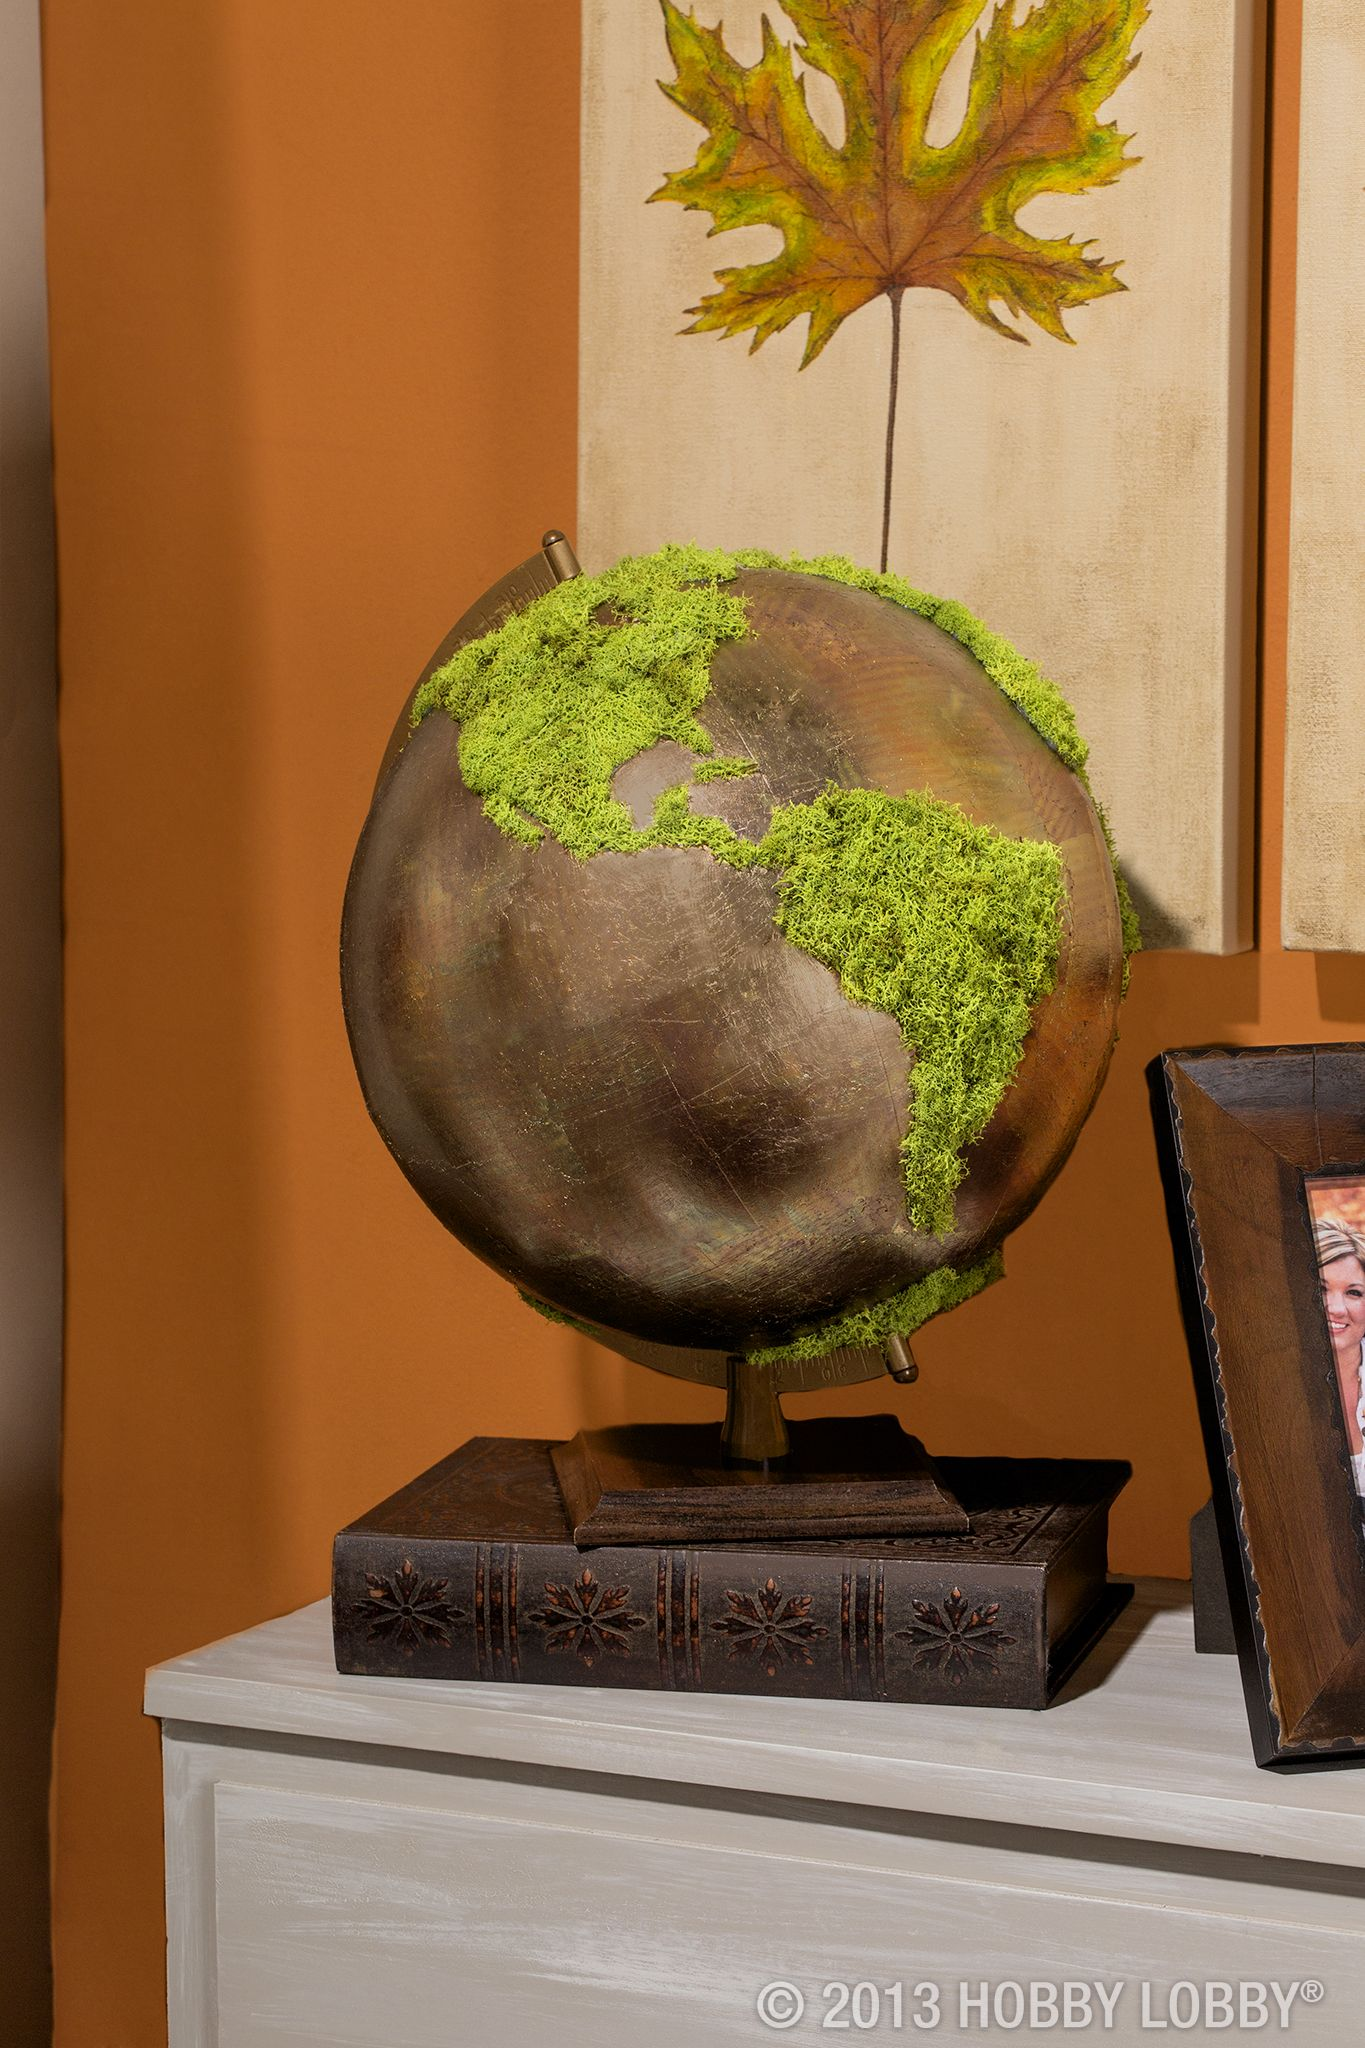 Ideas : We painted this basic globe a metallic hue then glued faux-moss over the continents for a trendy, upscale piece of table decor.